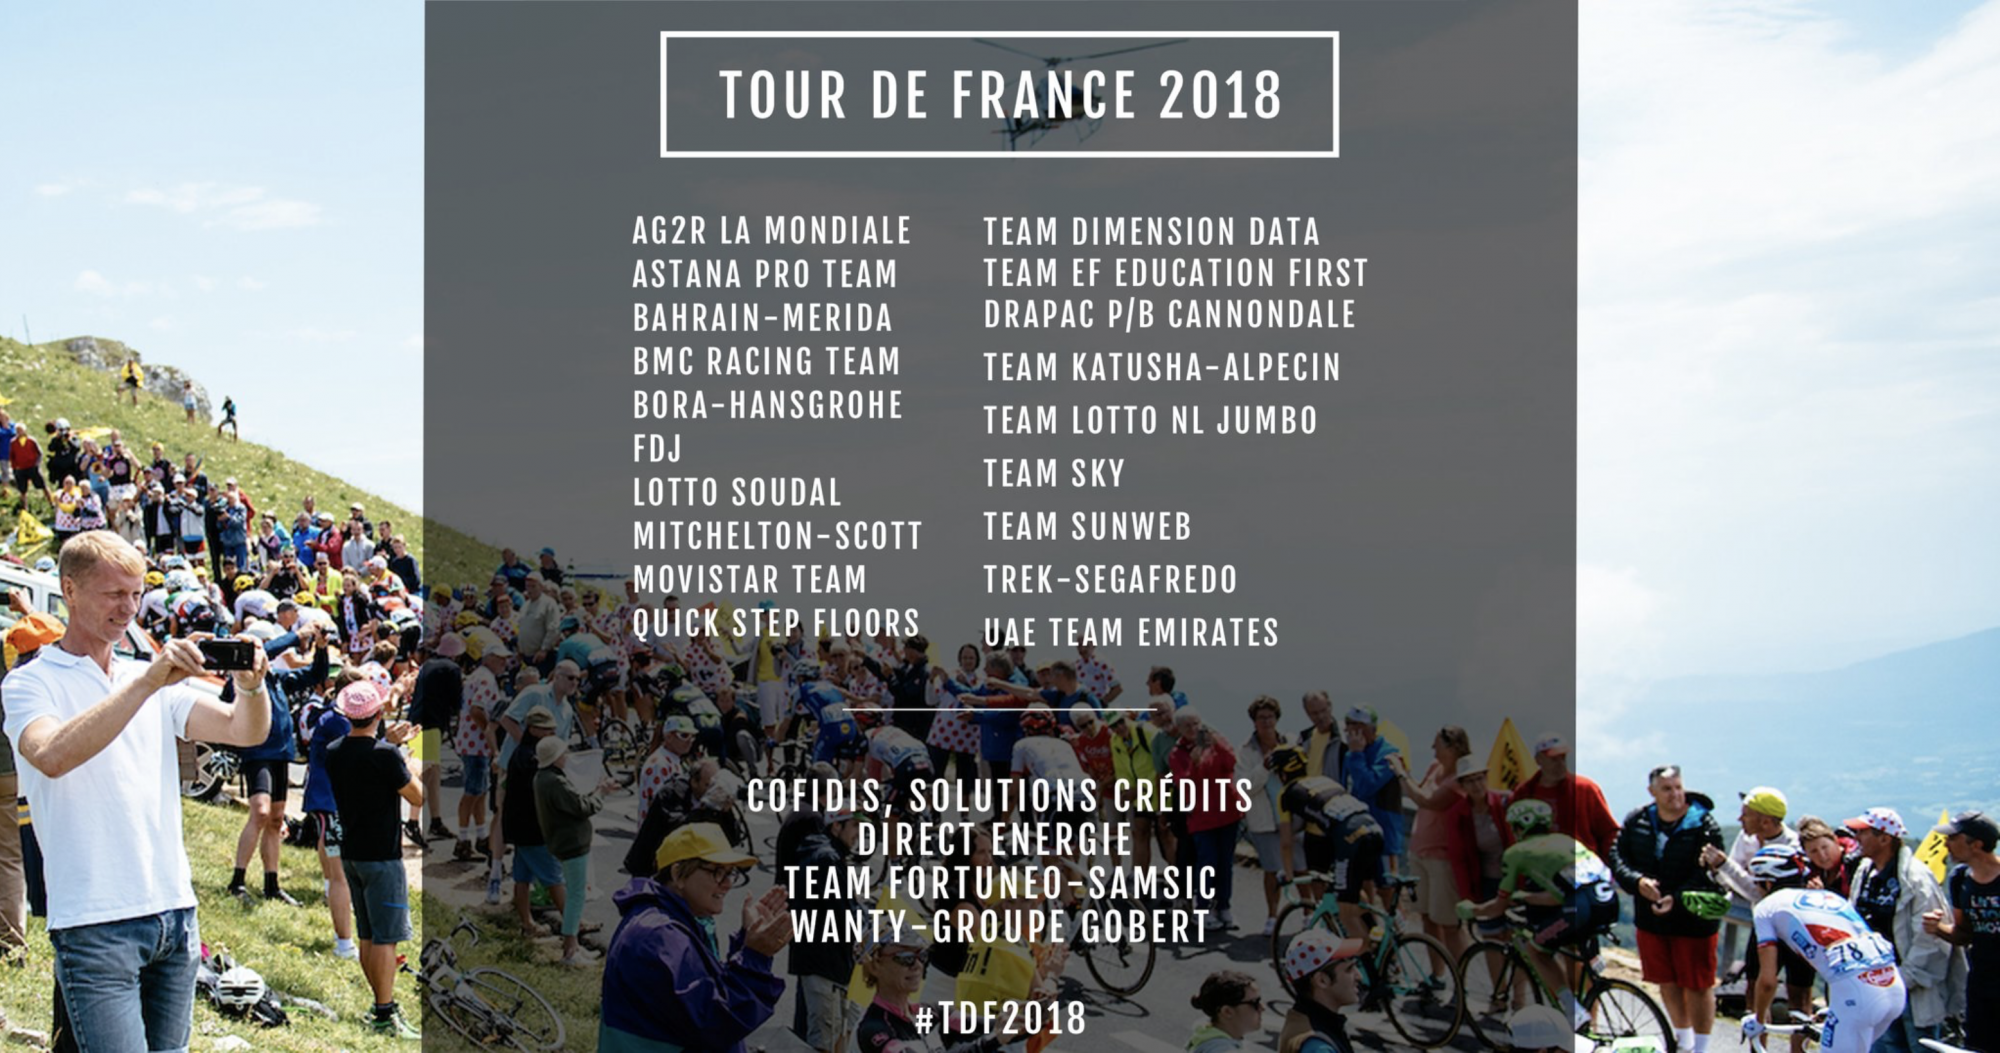 Le WildCards al Tour de France 2018